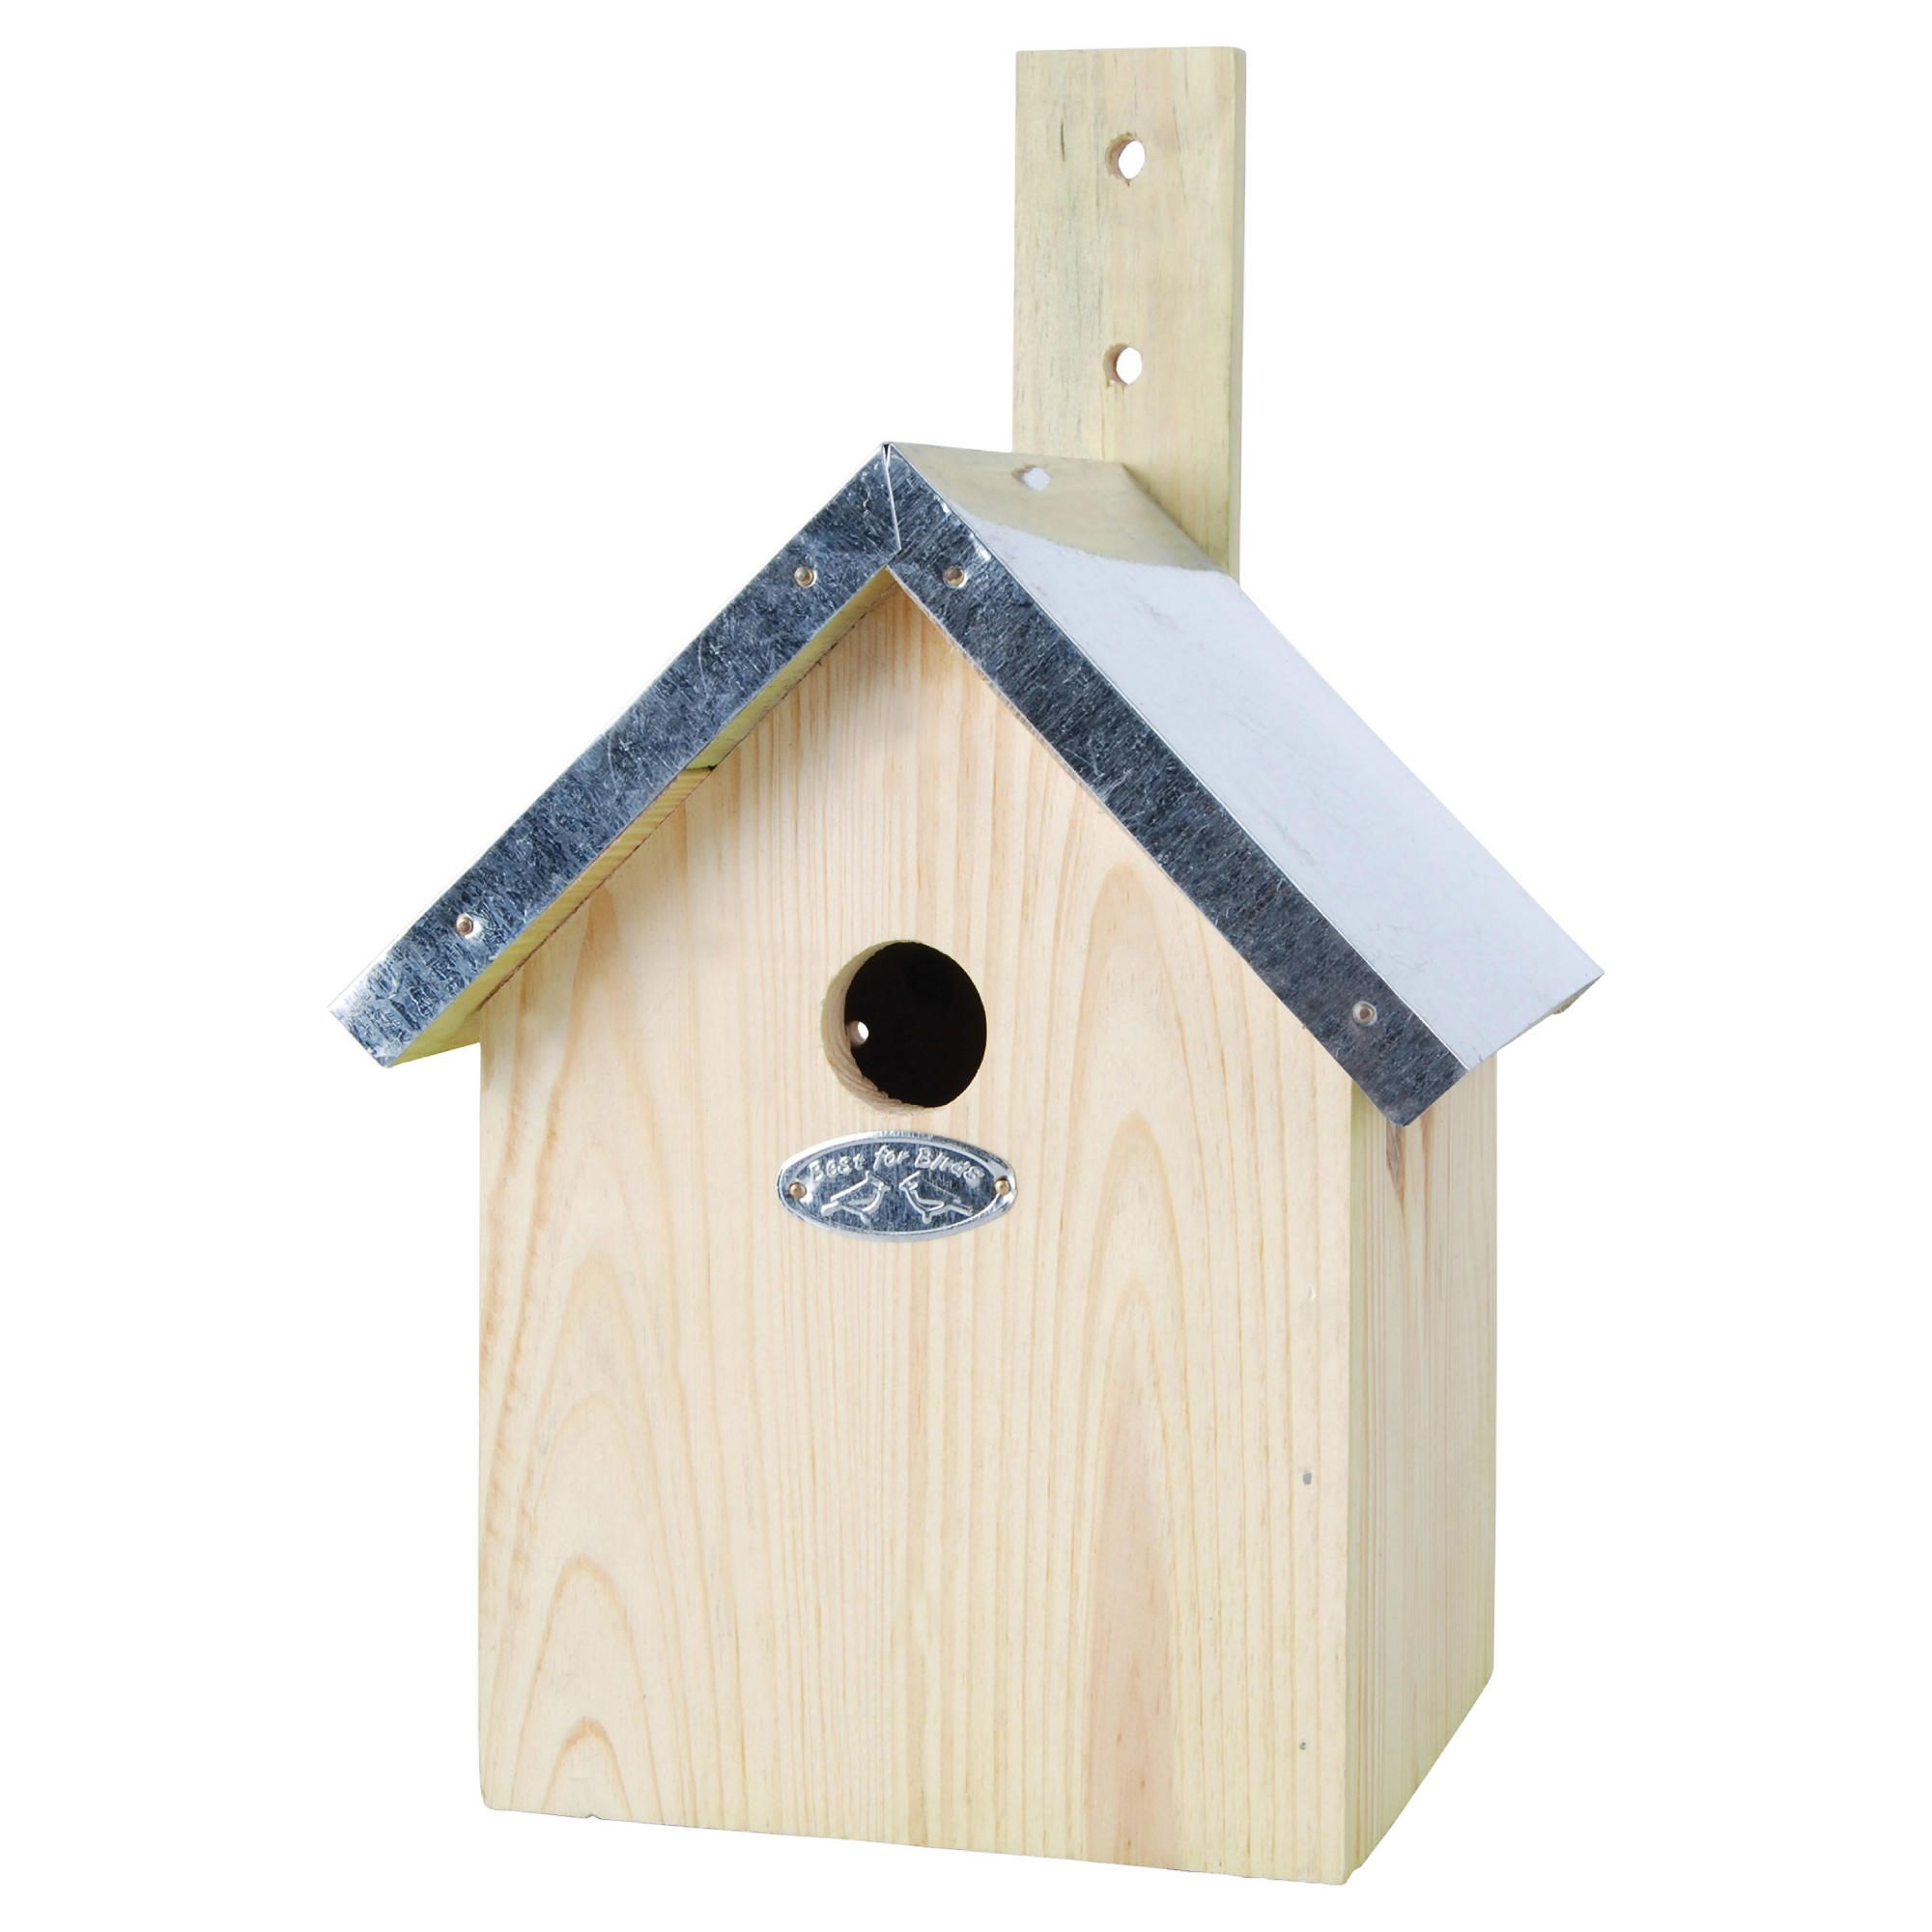 Fallen Fruits Blue Tit Nest Box 100% FSC Wood